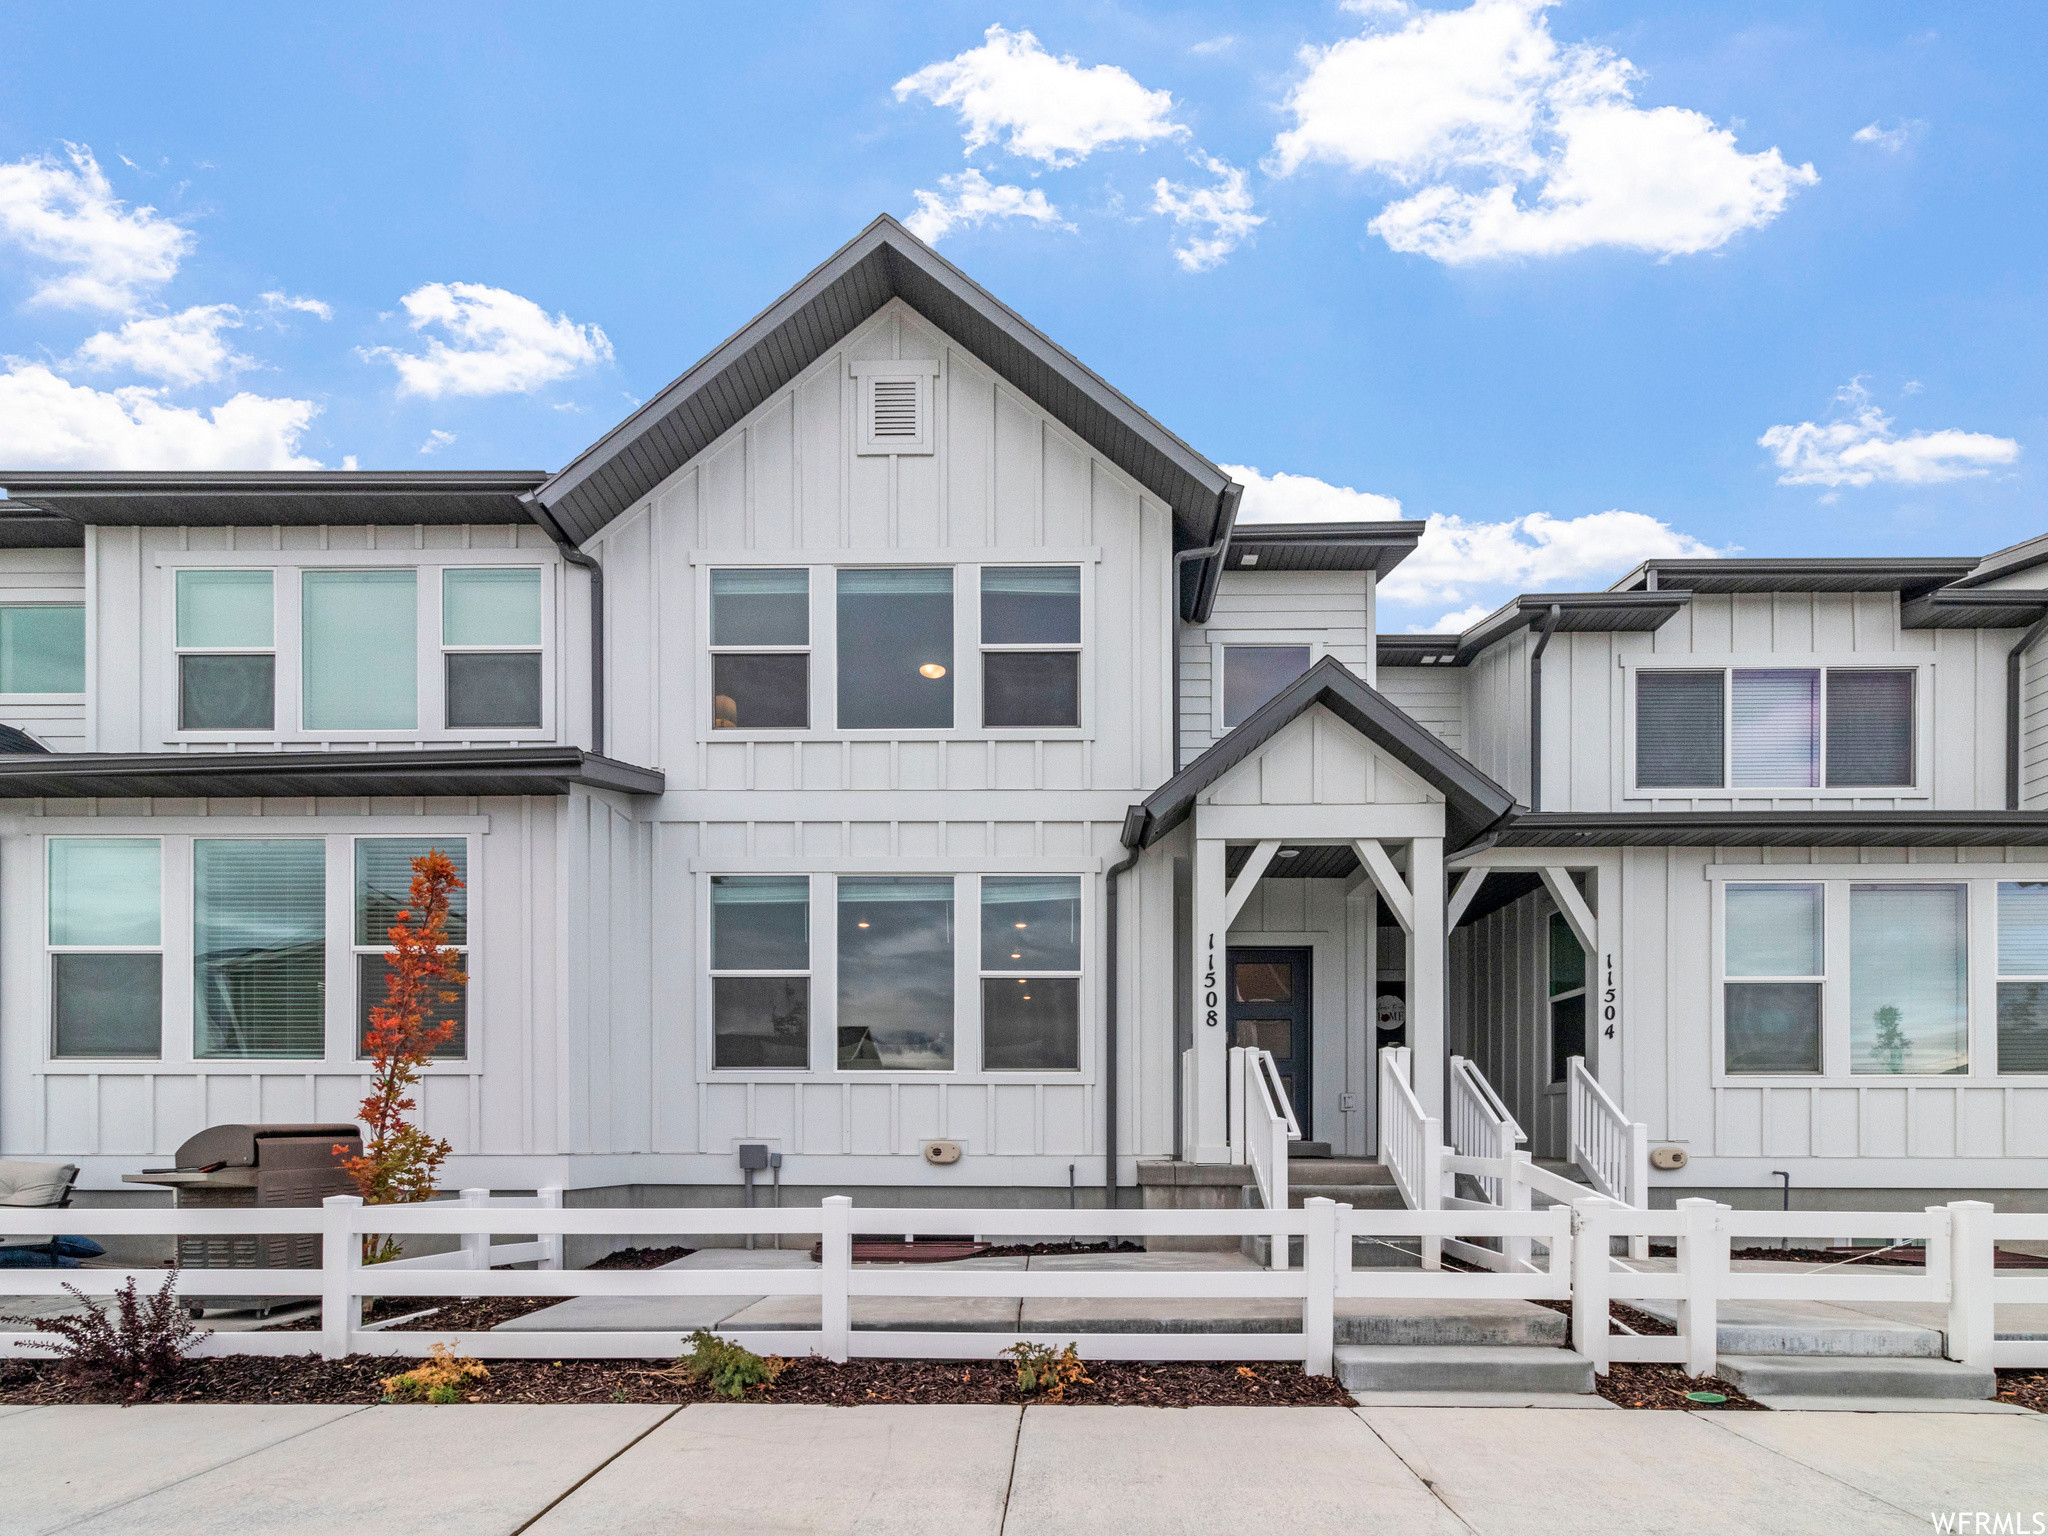 3-Bedroom Townhouse In South River